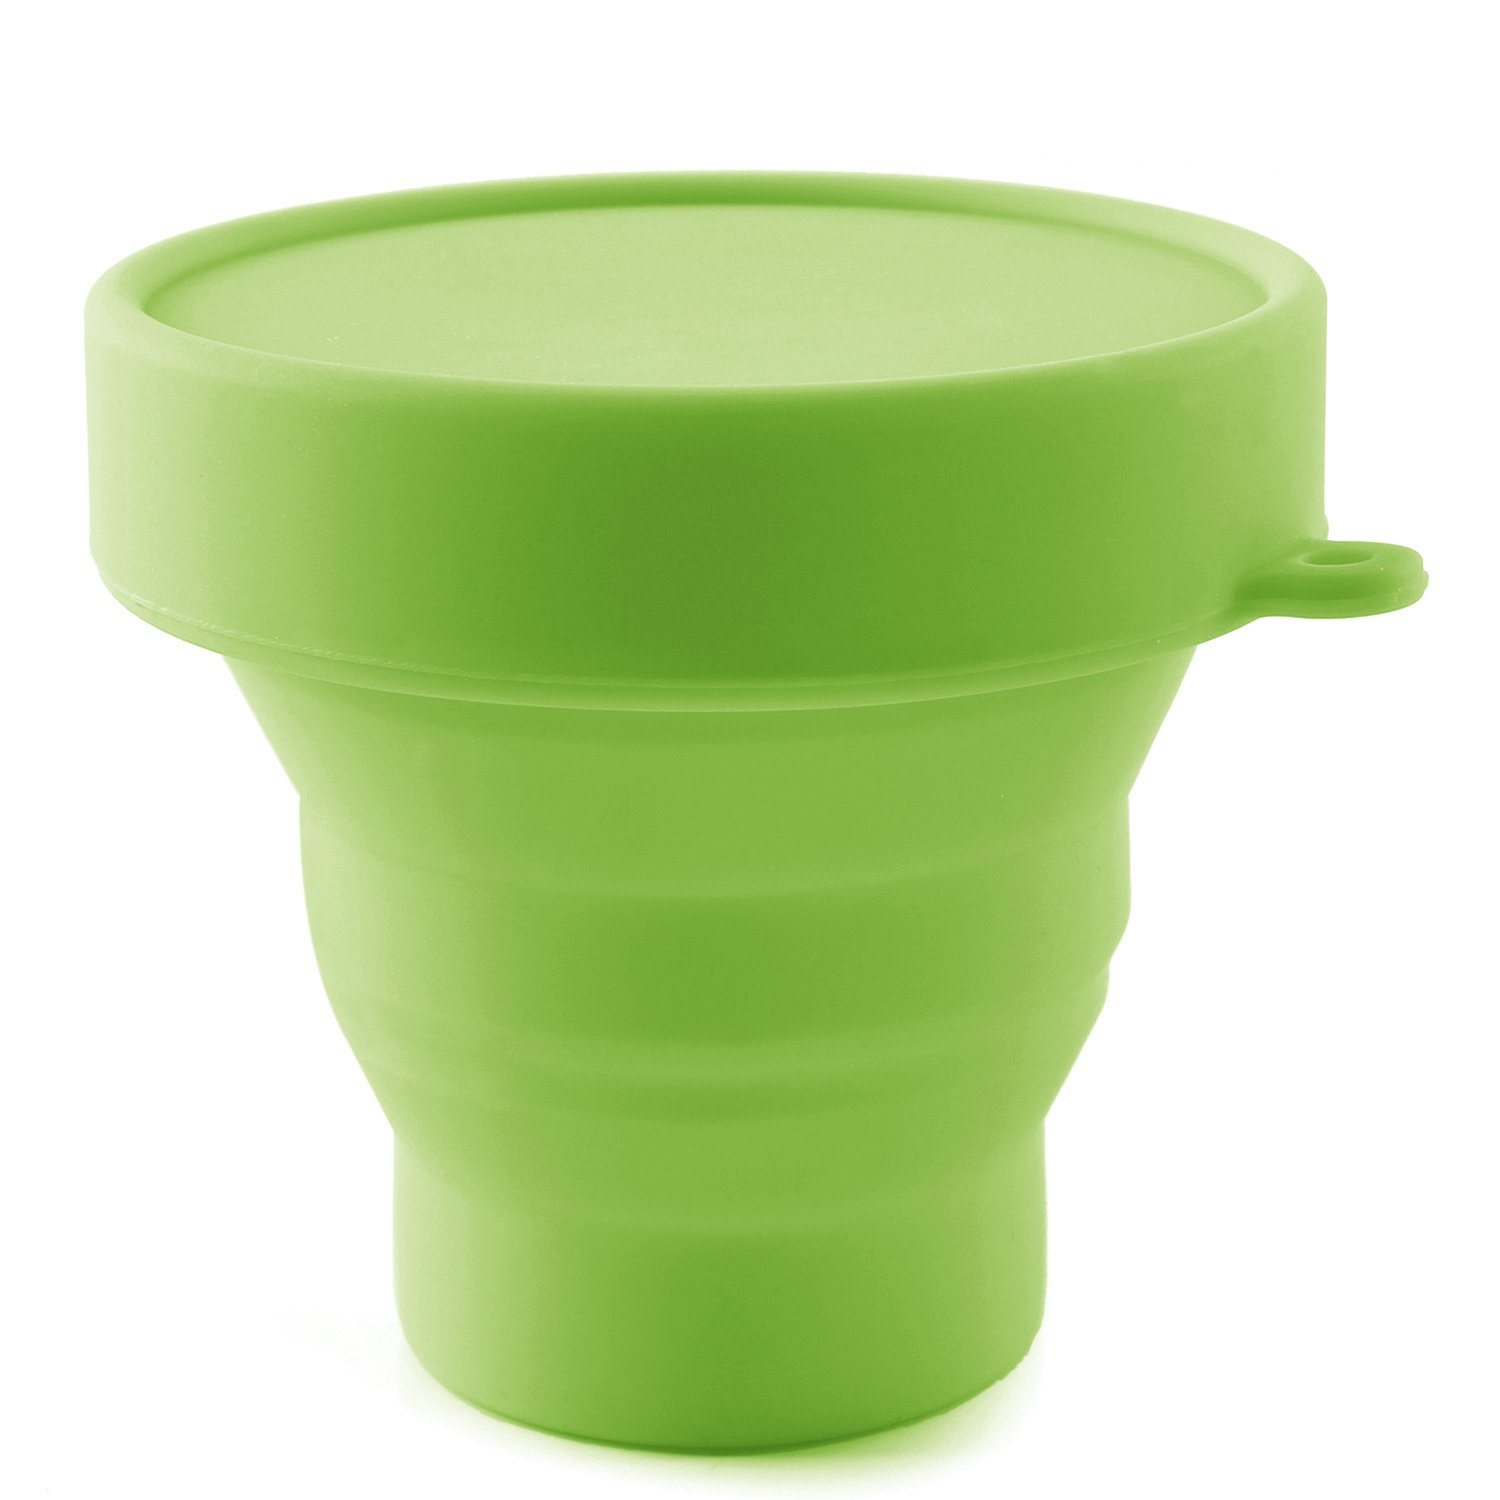 Collapsible Silicone Cup Foldable Sterilizing Cup for Menstrual Cup for Moon Cup (Green-N)